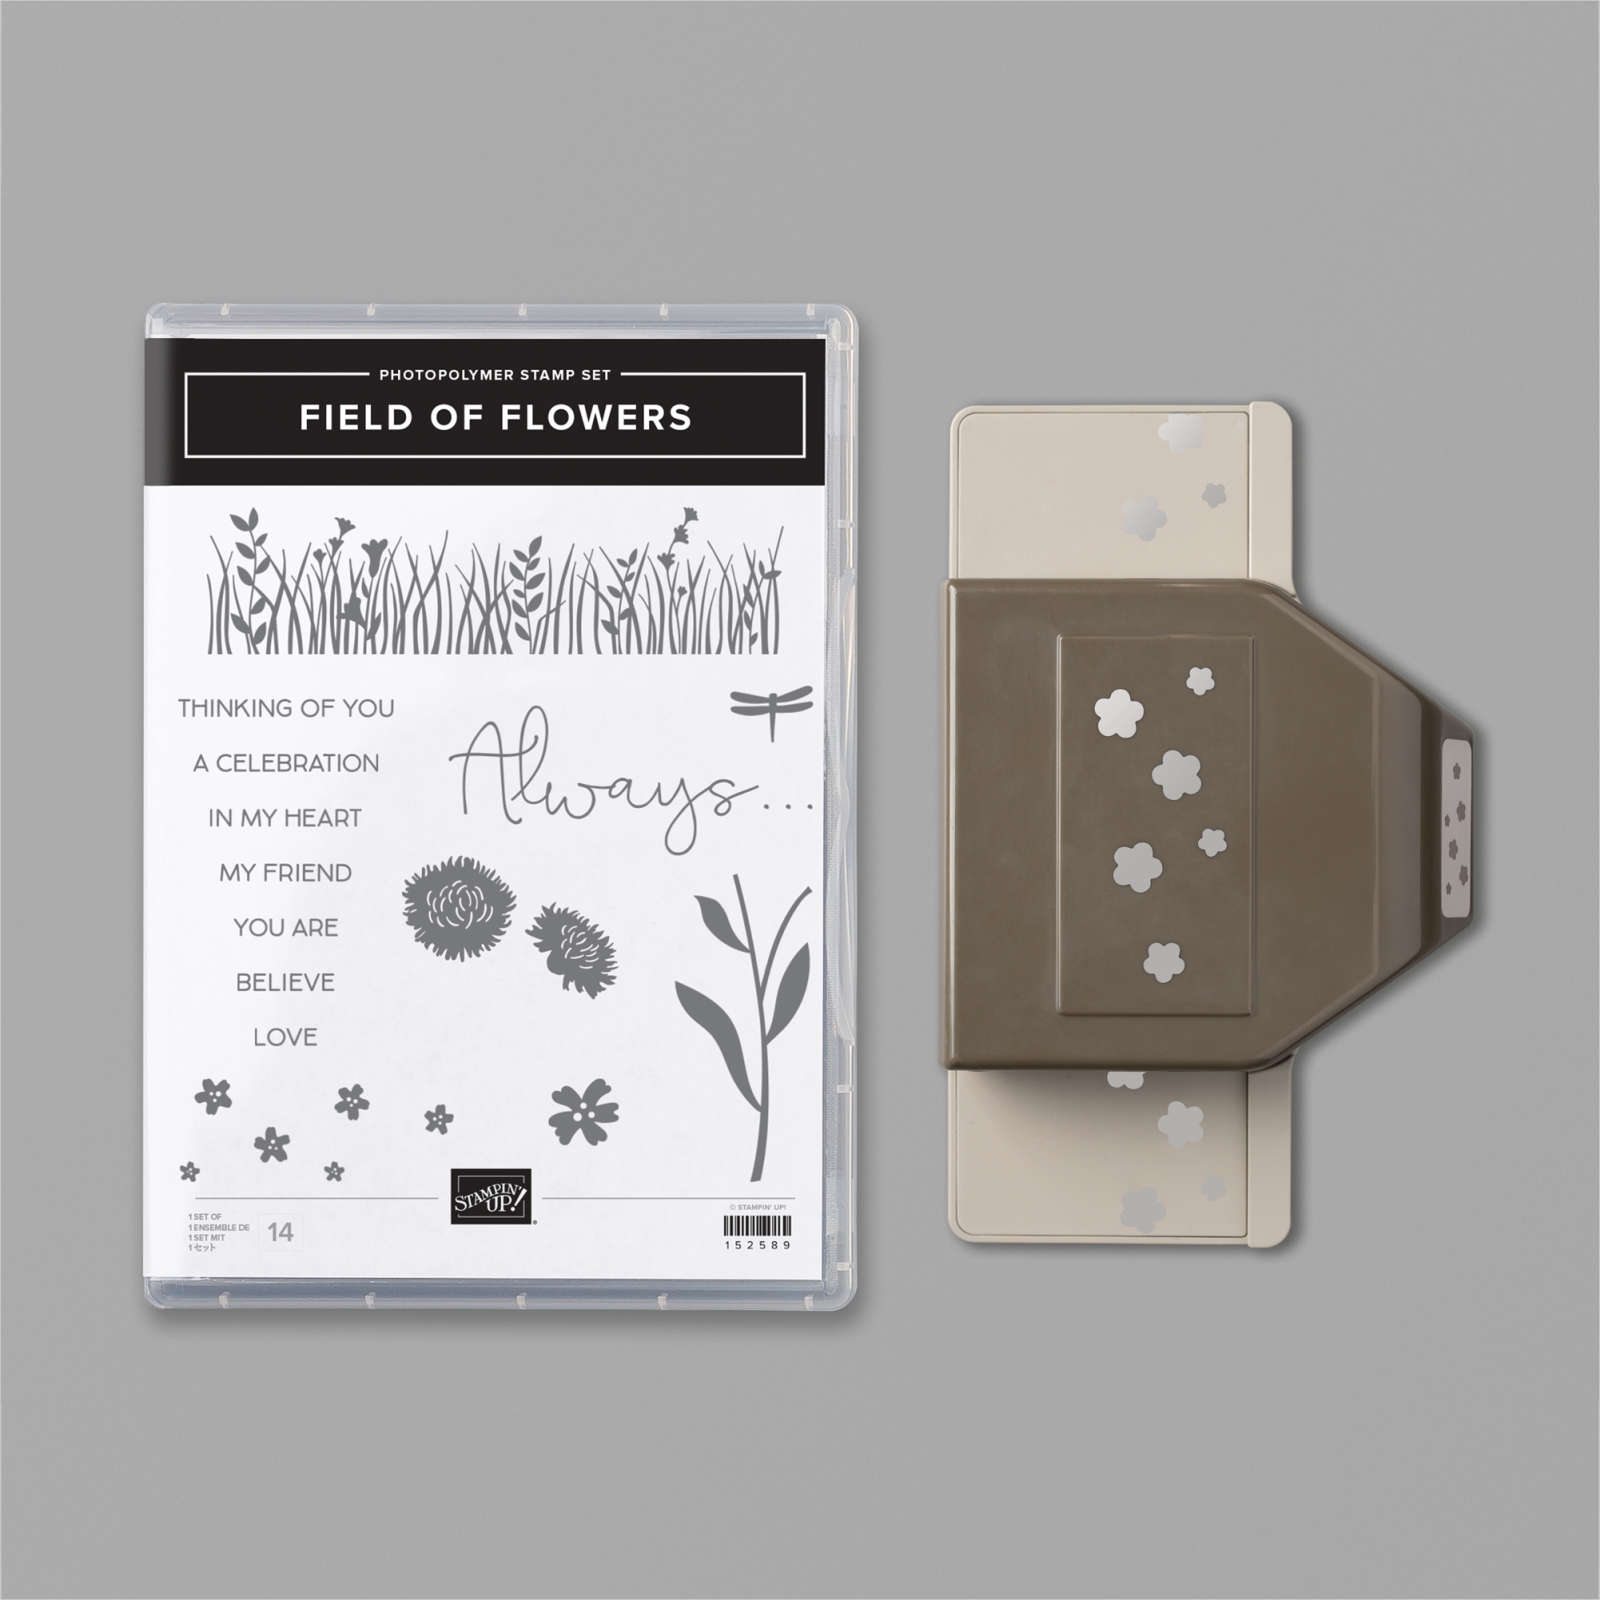 FIELD OF FLOWERS BUNDLE #154108